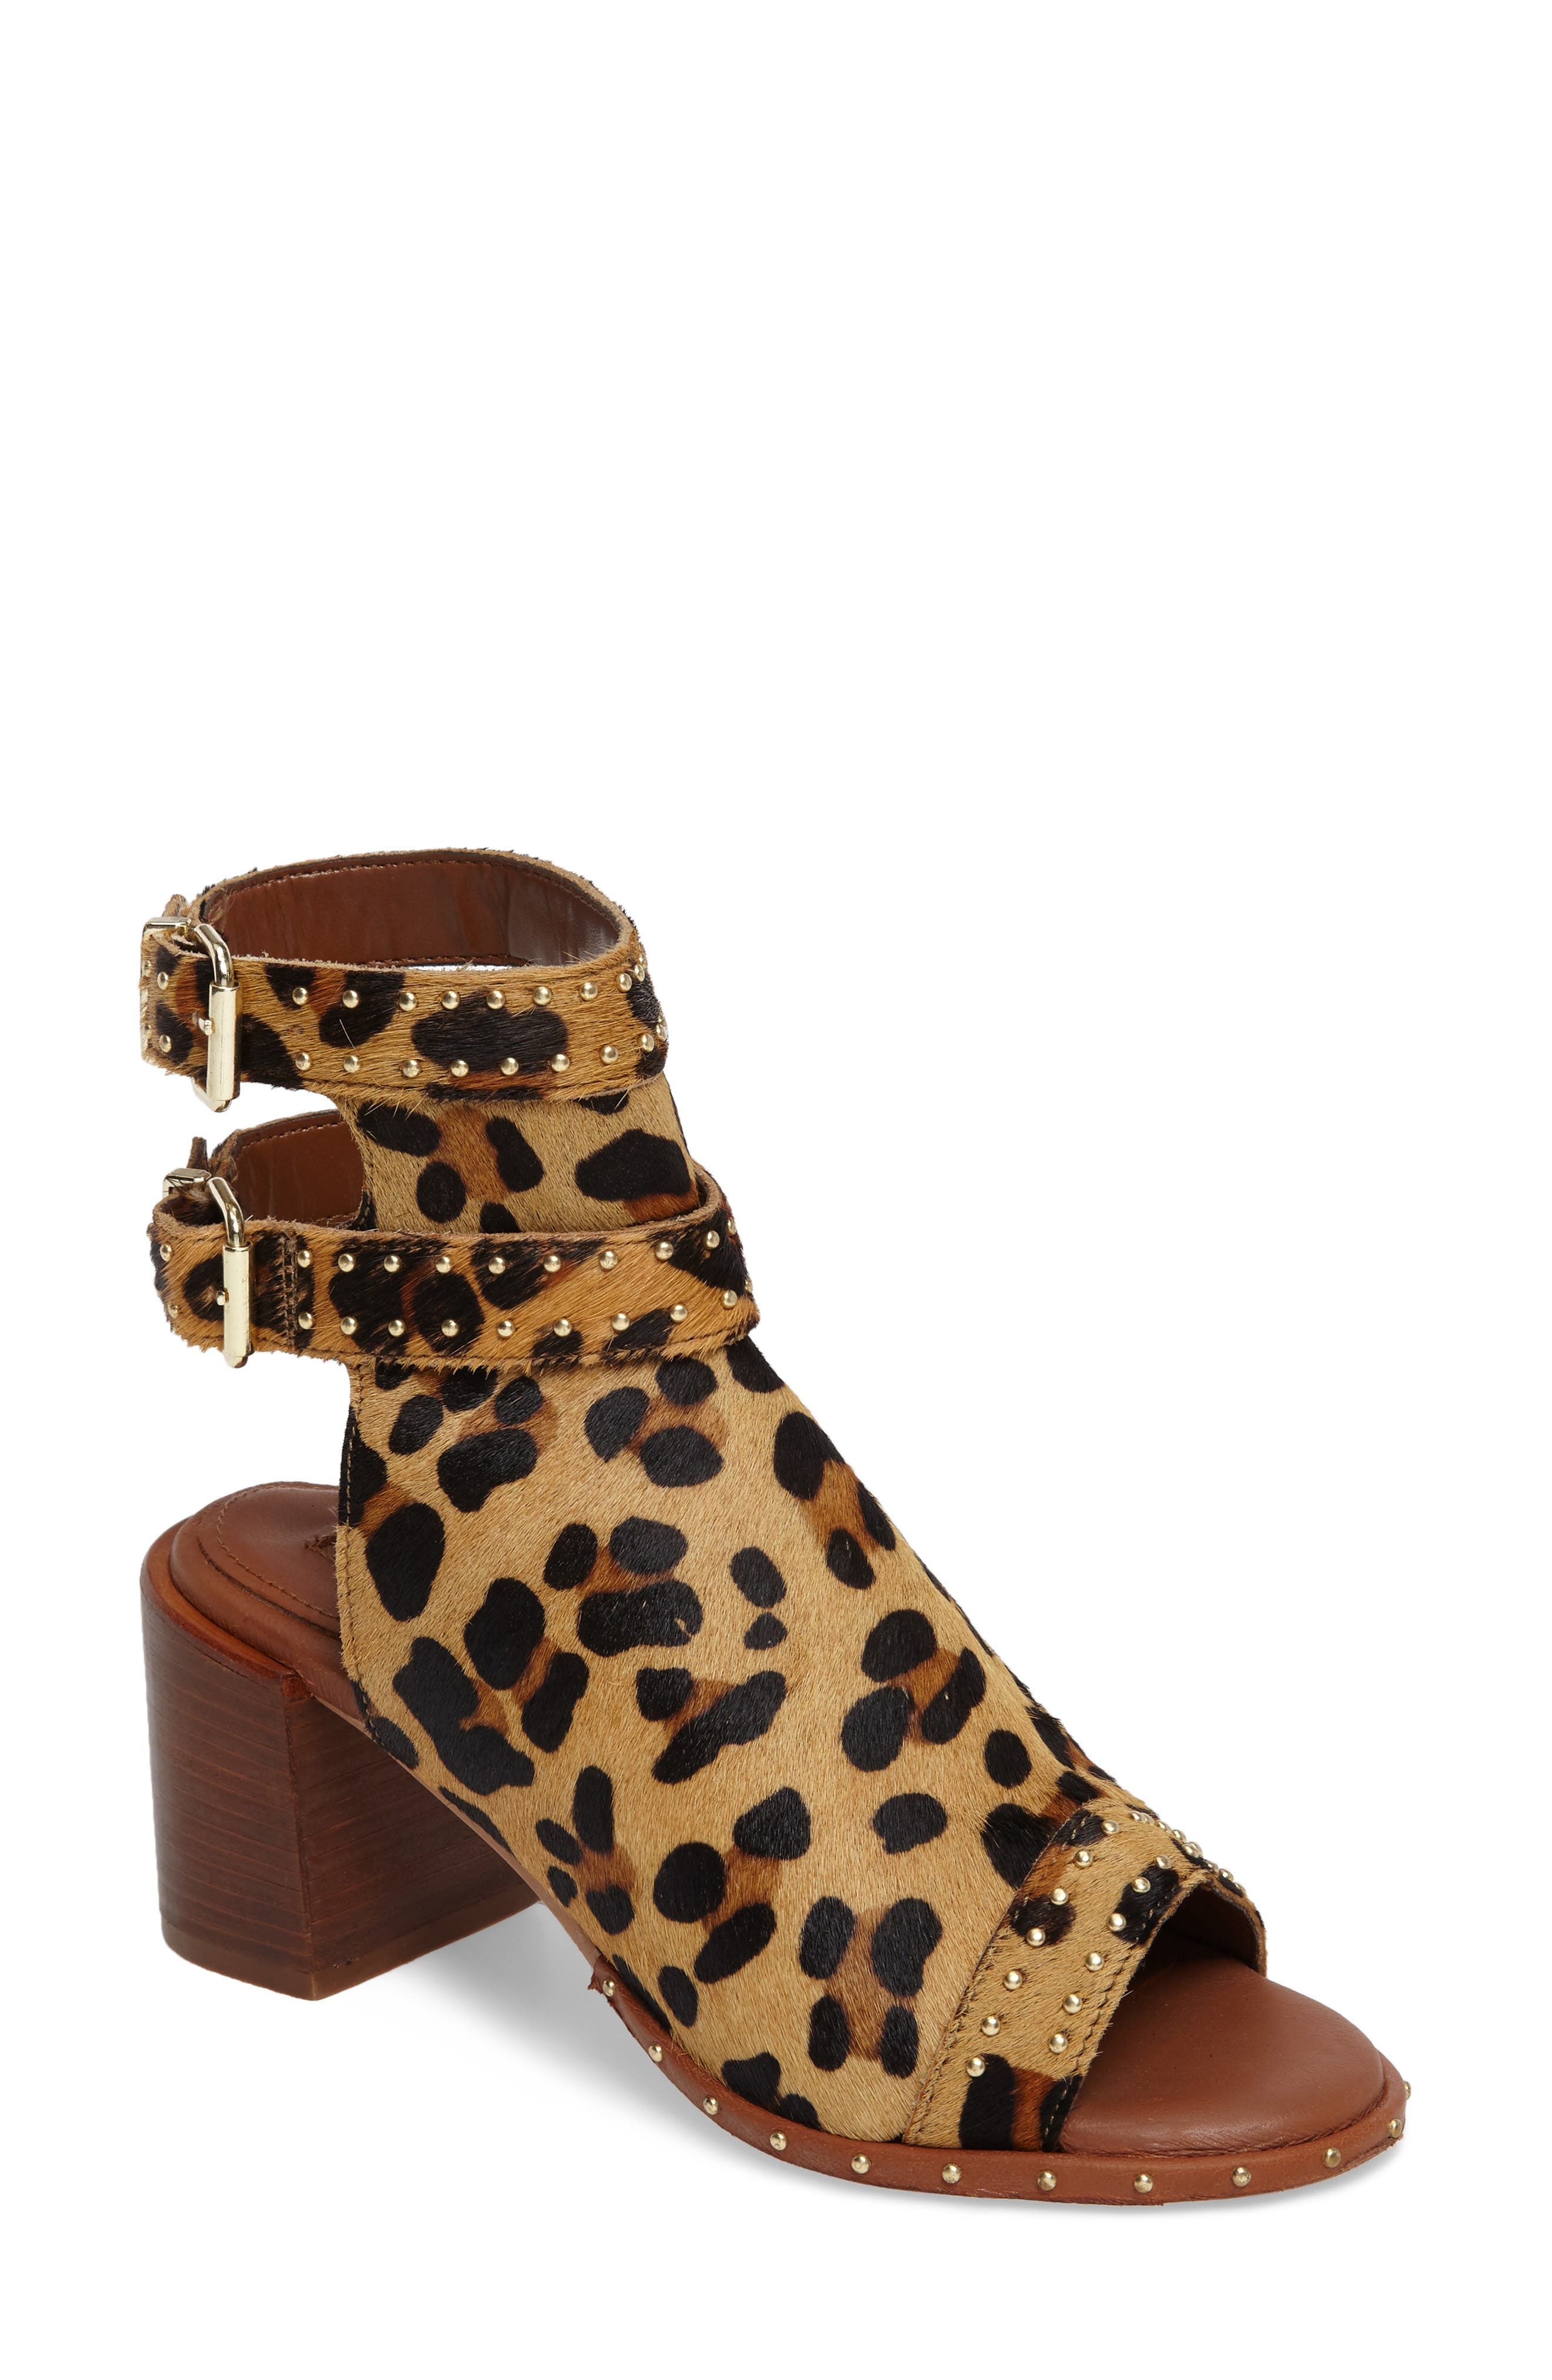 Main Image - Topshop North Studded Bootie Sandal (Women)